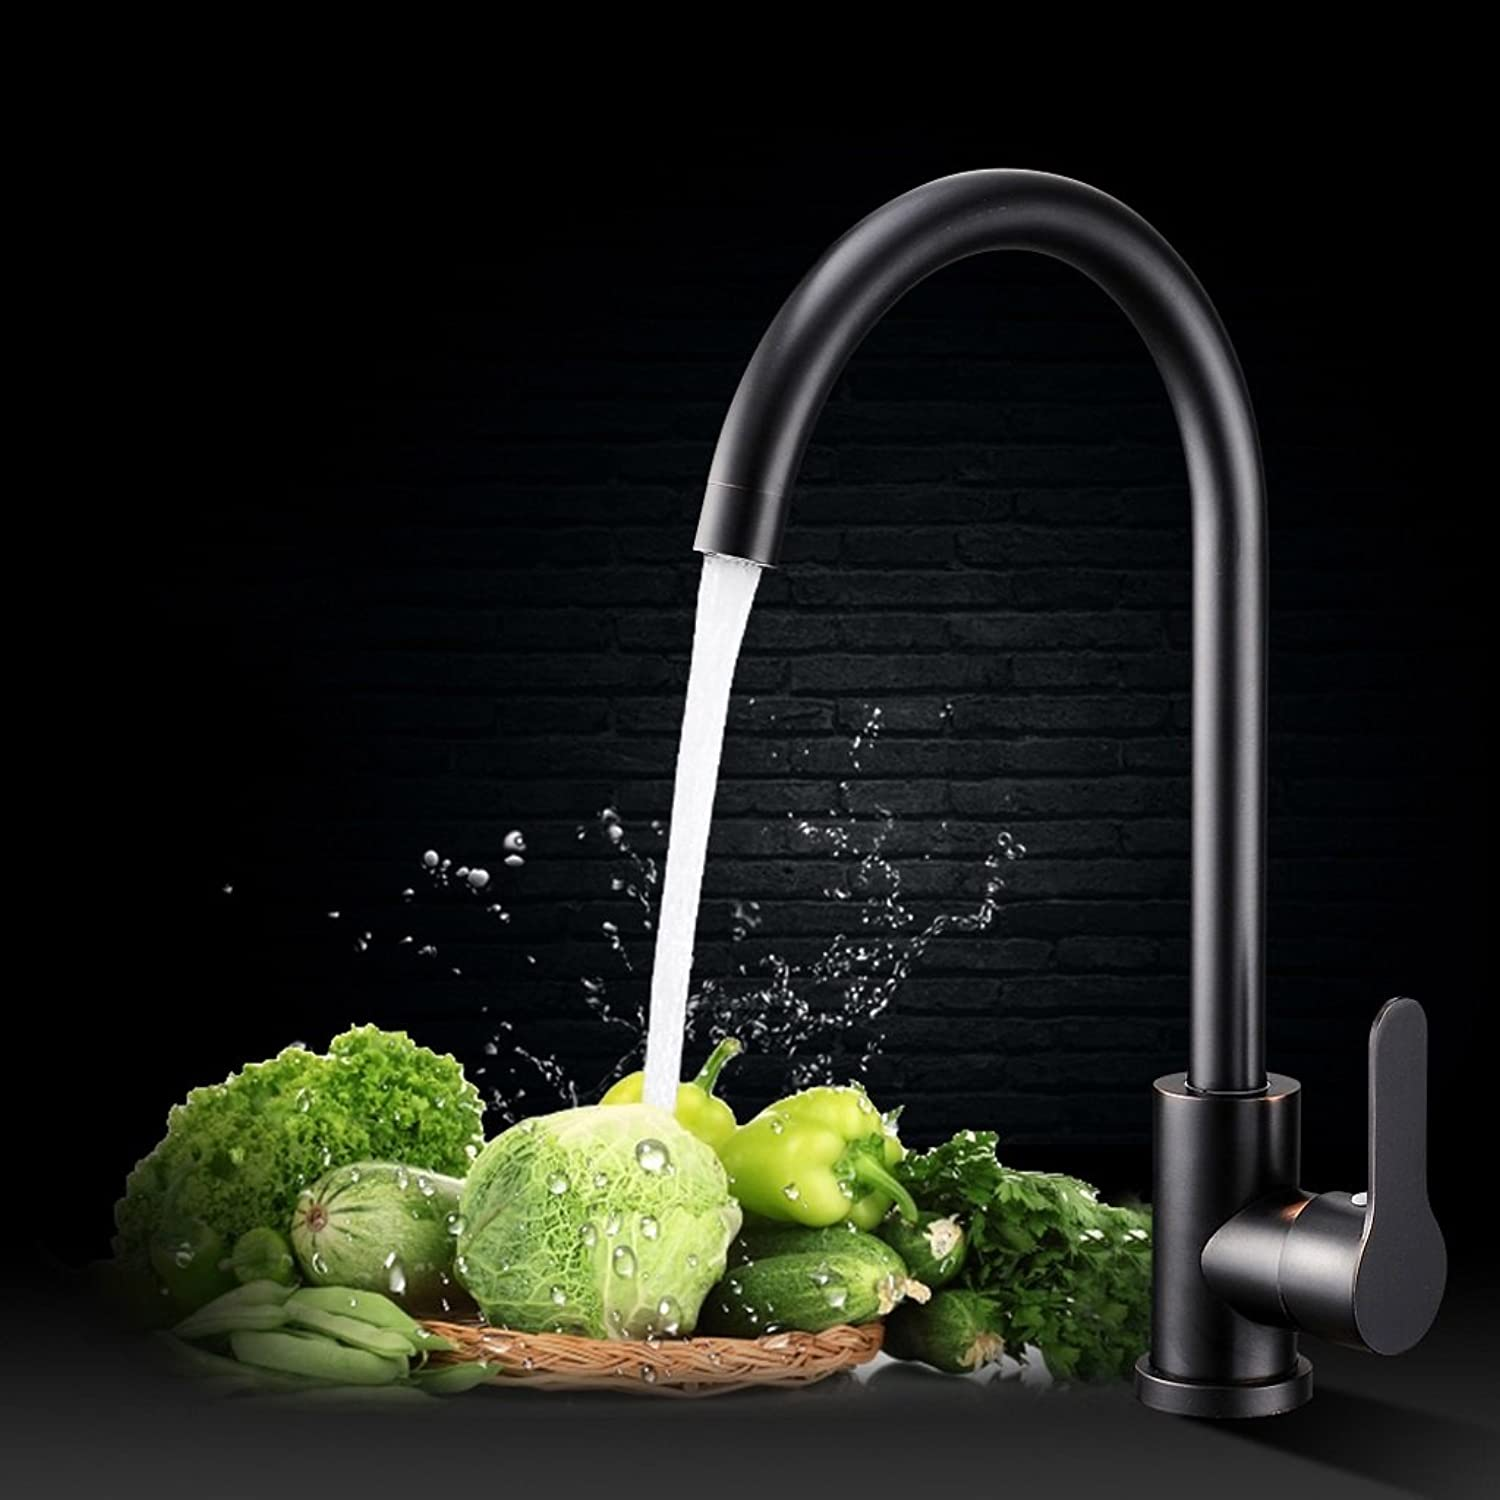 Black bronze 304 stainless steel redatable kitchen sink hot and cold water faucet